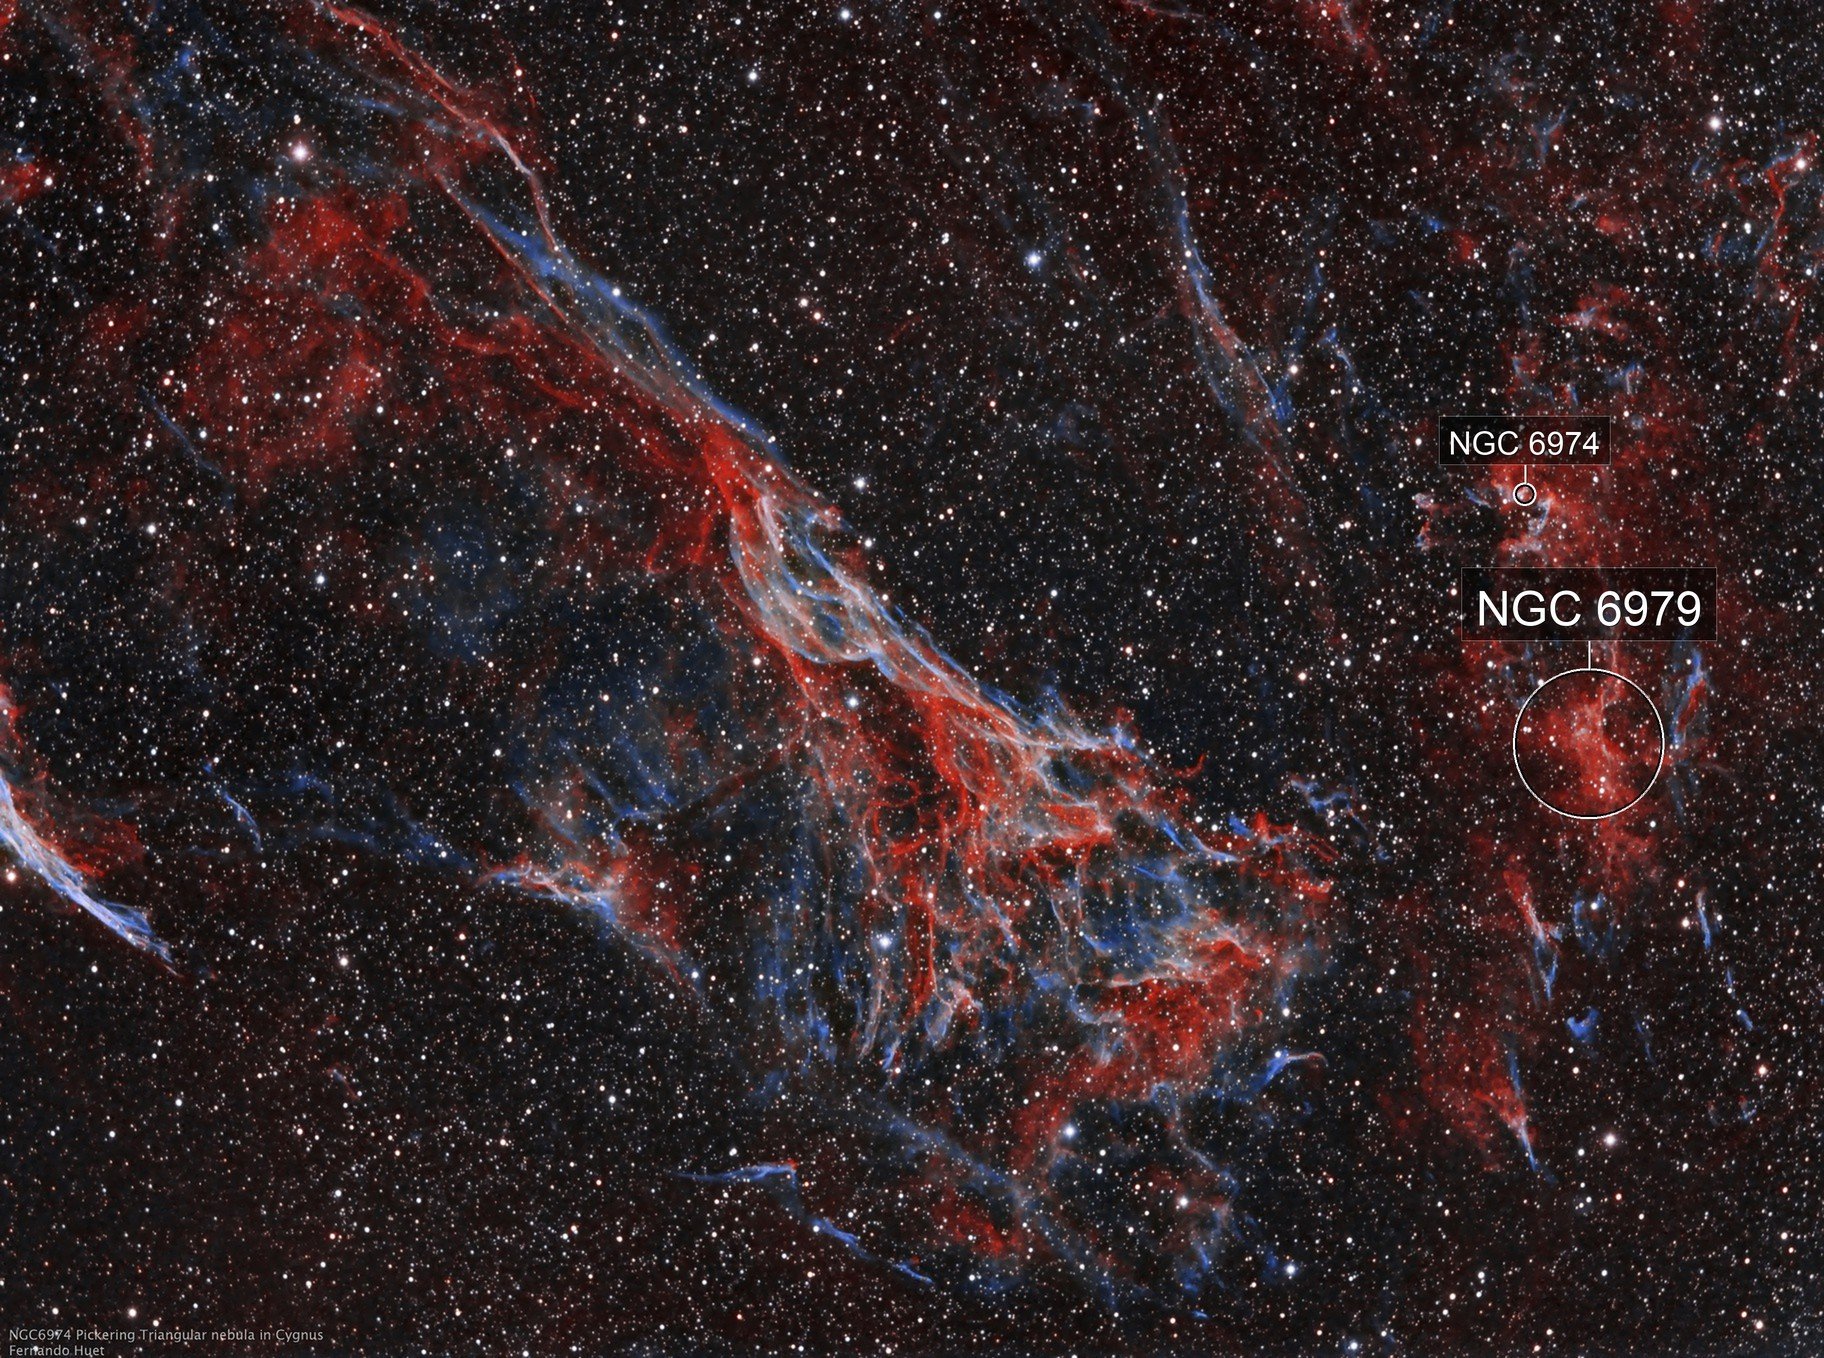 NGC6979 and Pickering's Triangle in Cygnus